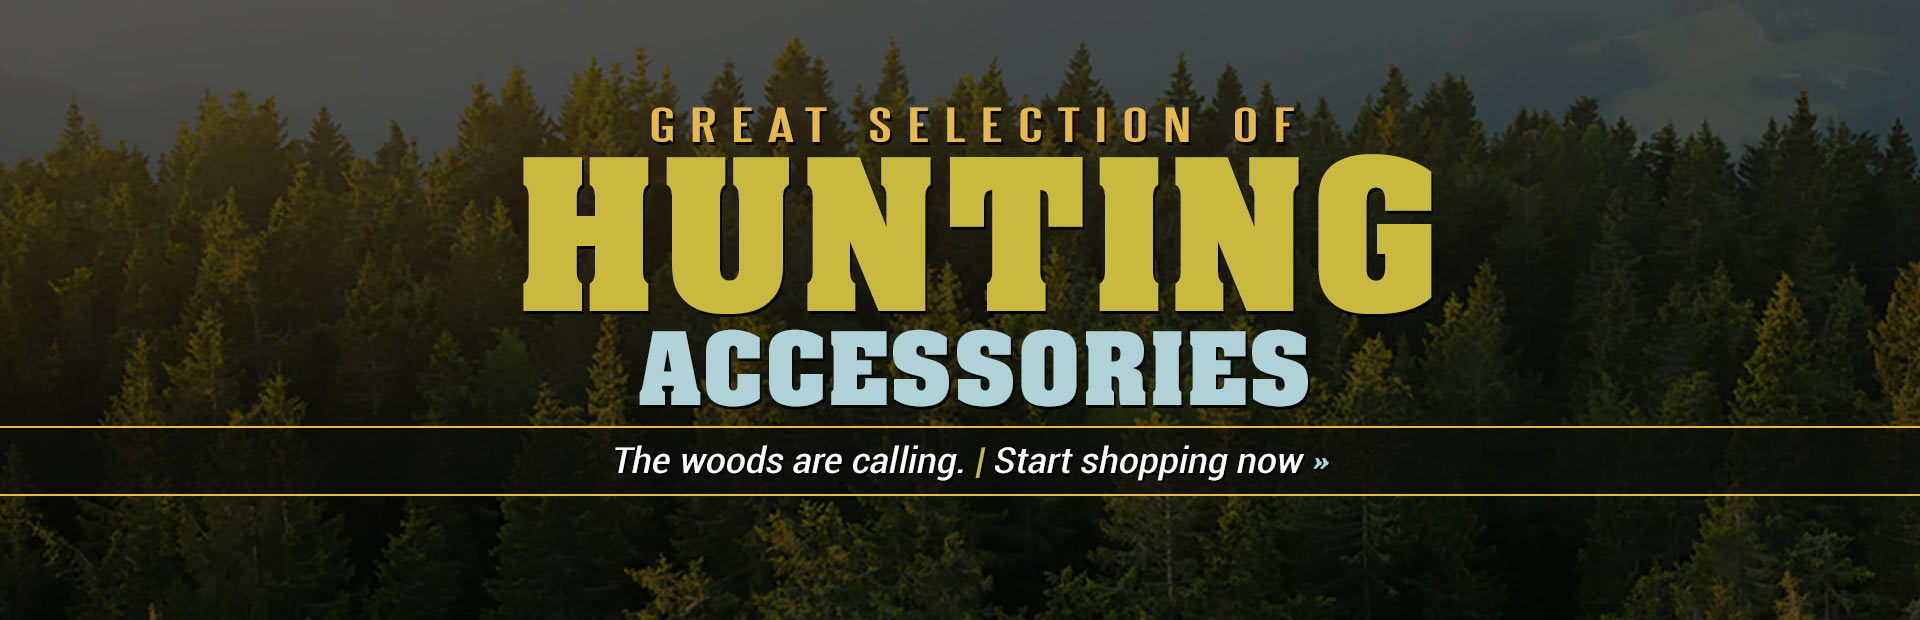 We offer a great selection of hunting accessories! Click here to shop online.